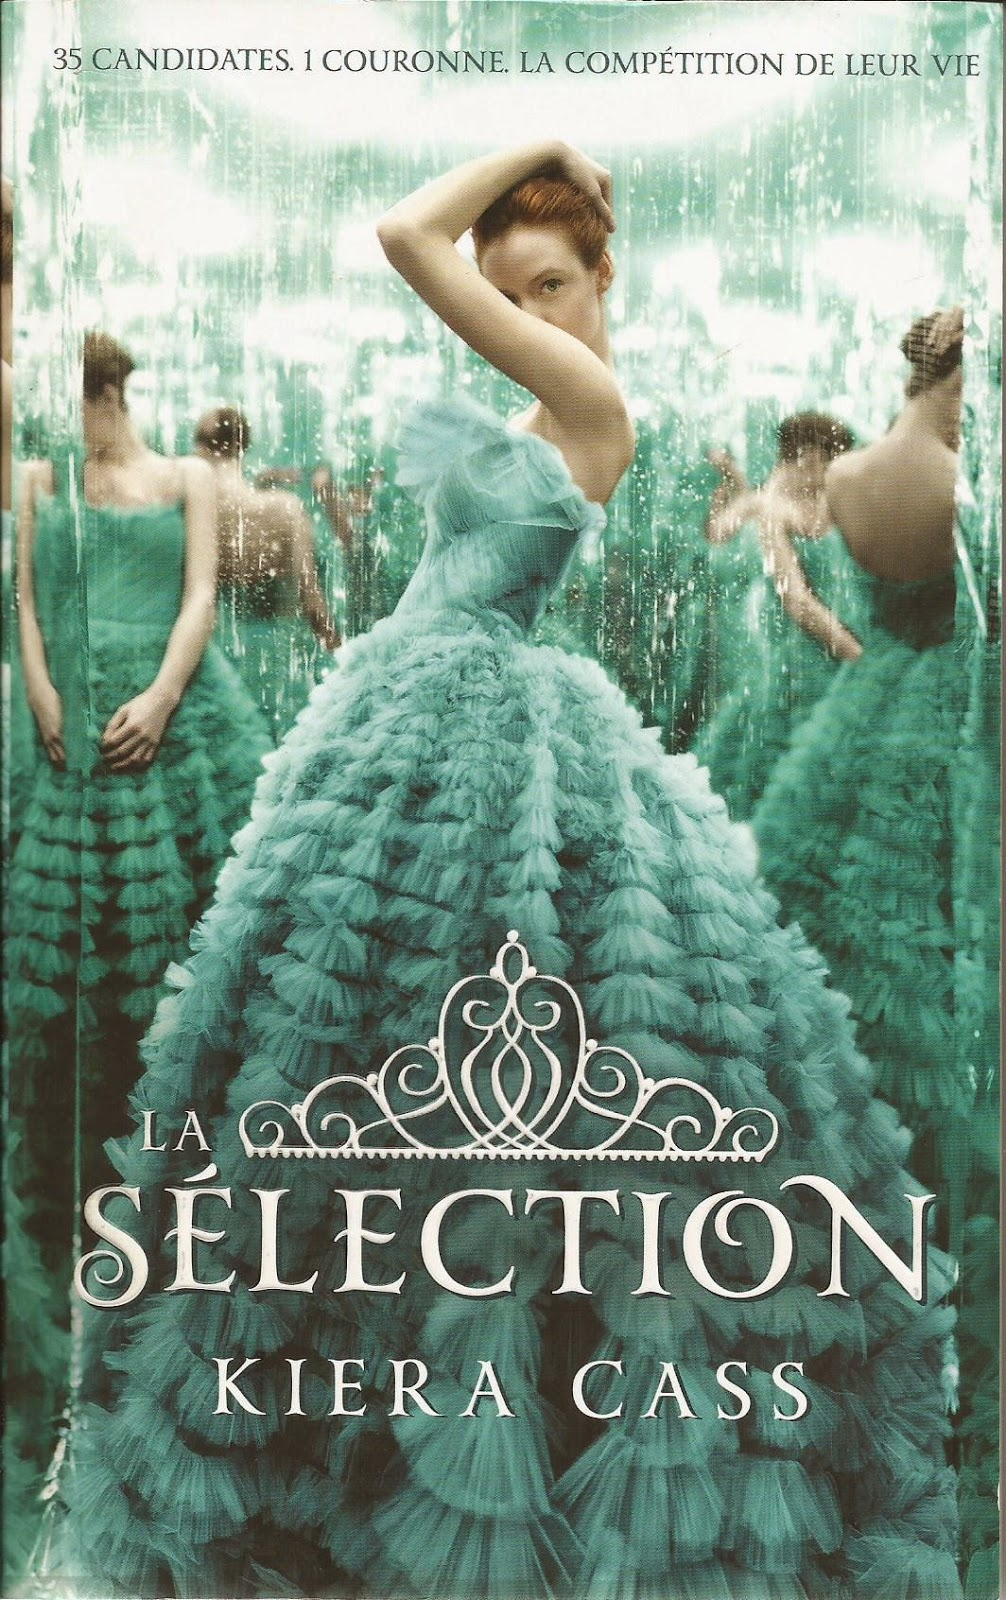 La Selection, Kiera Cass Couverture